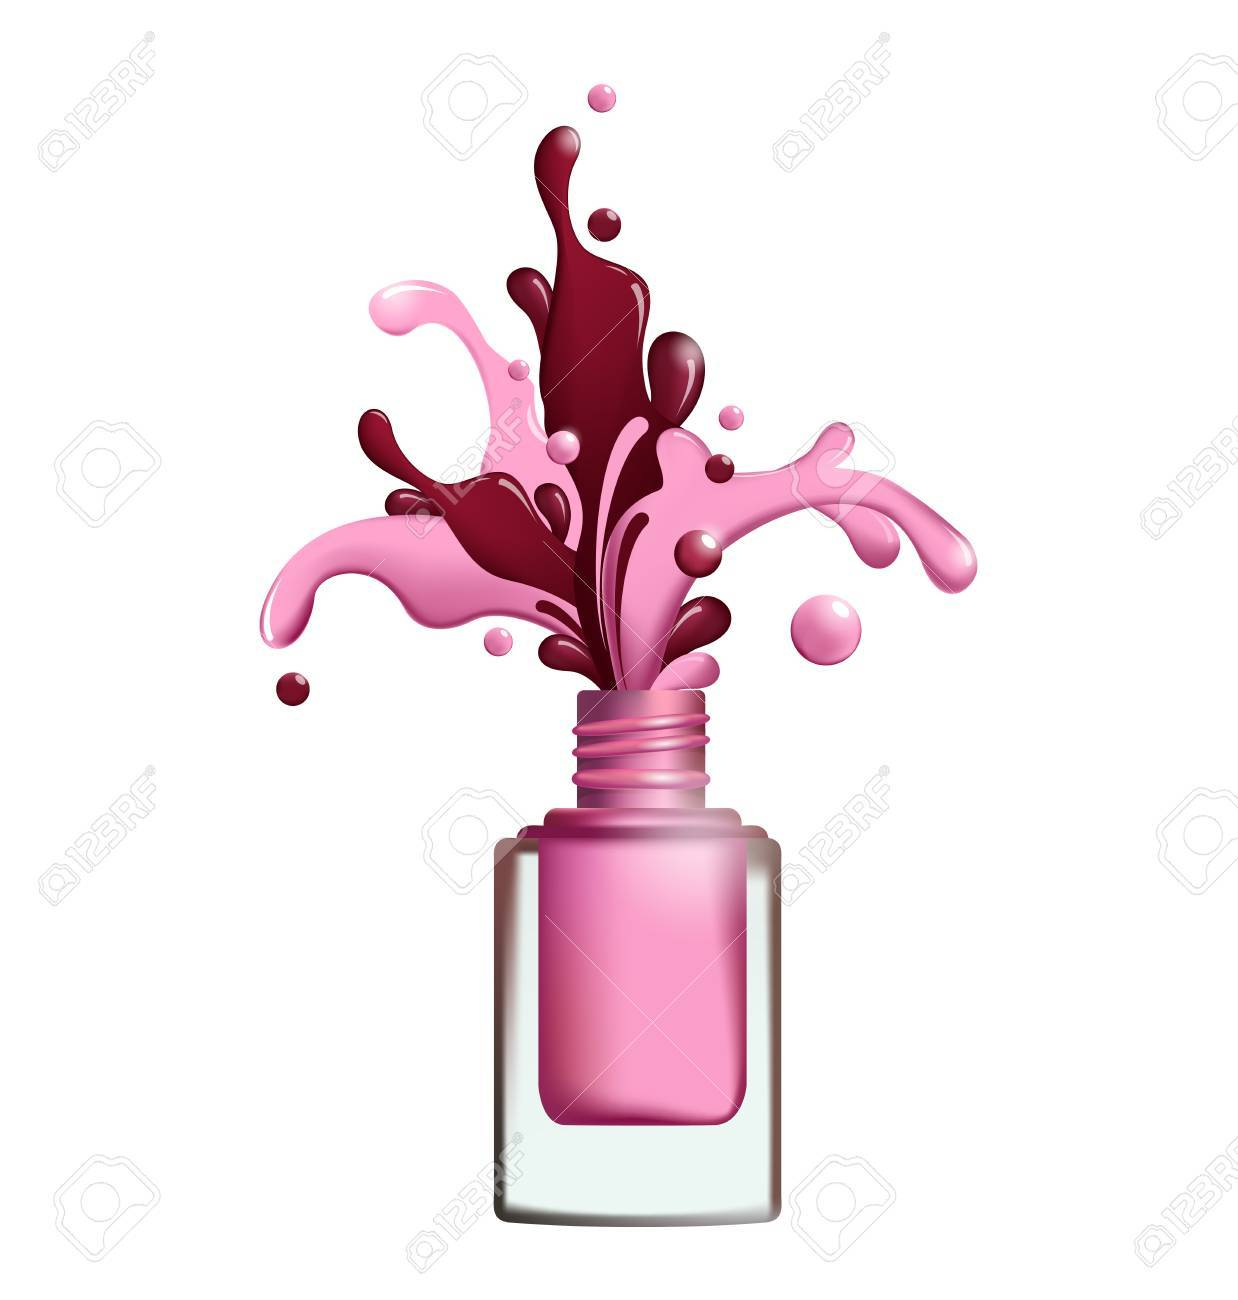 Splashes Of Nail Polish Froze In Motion On White Background Vector ...